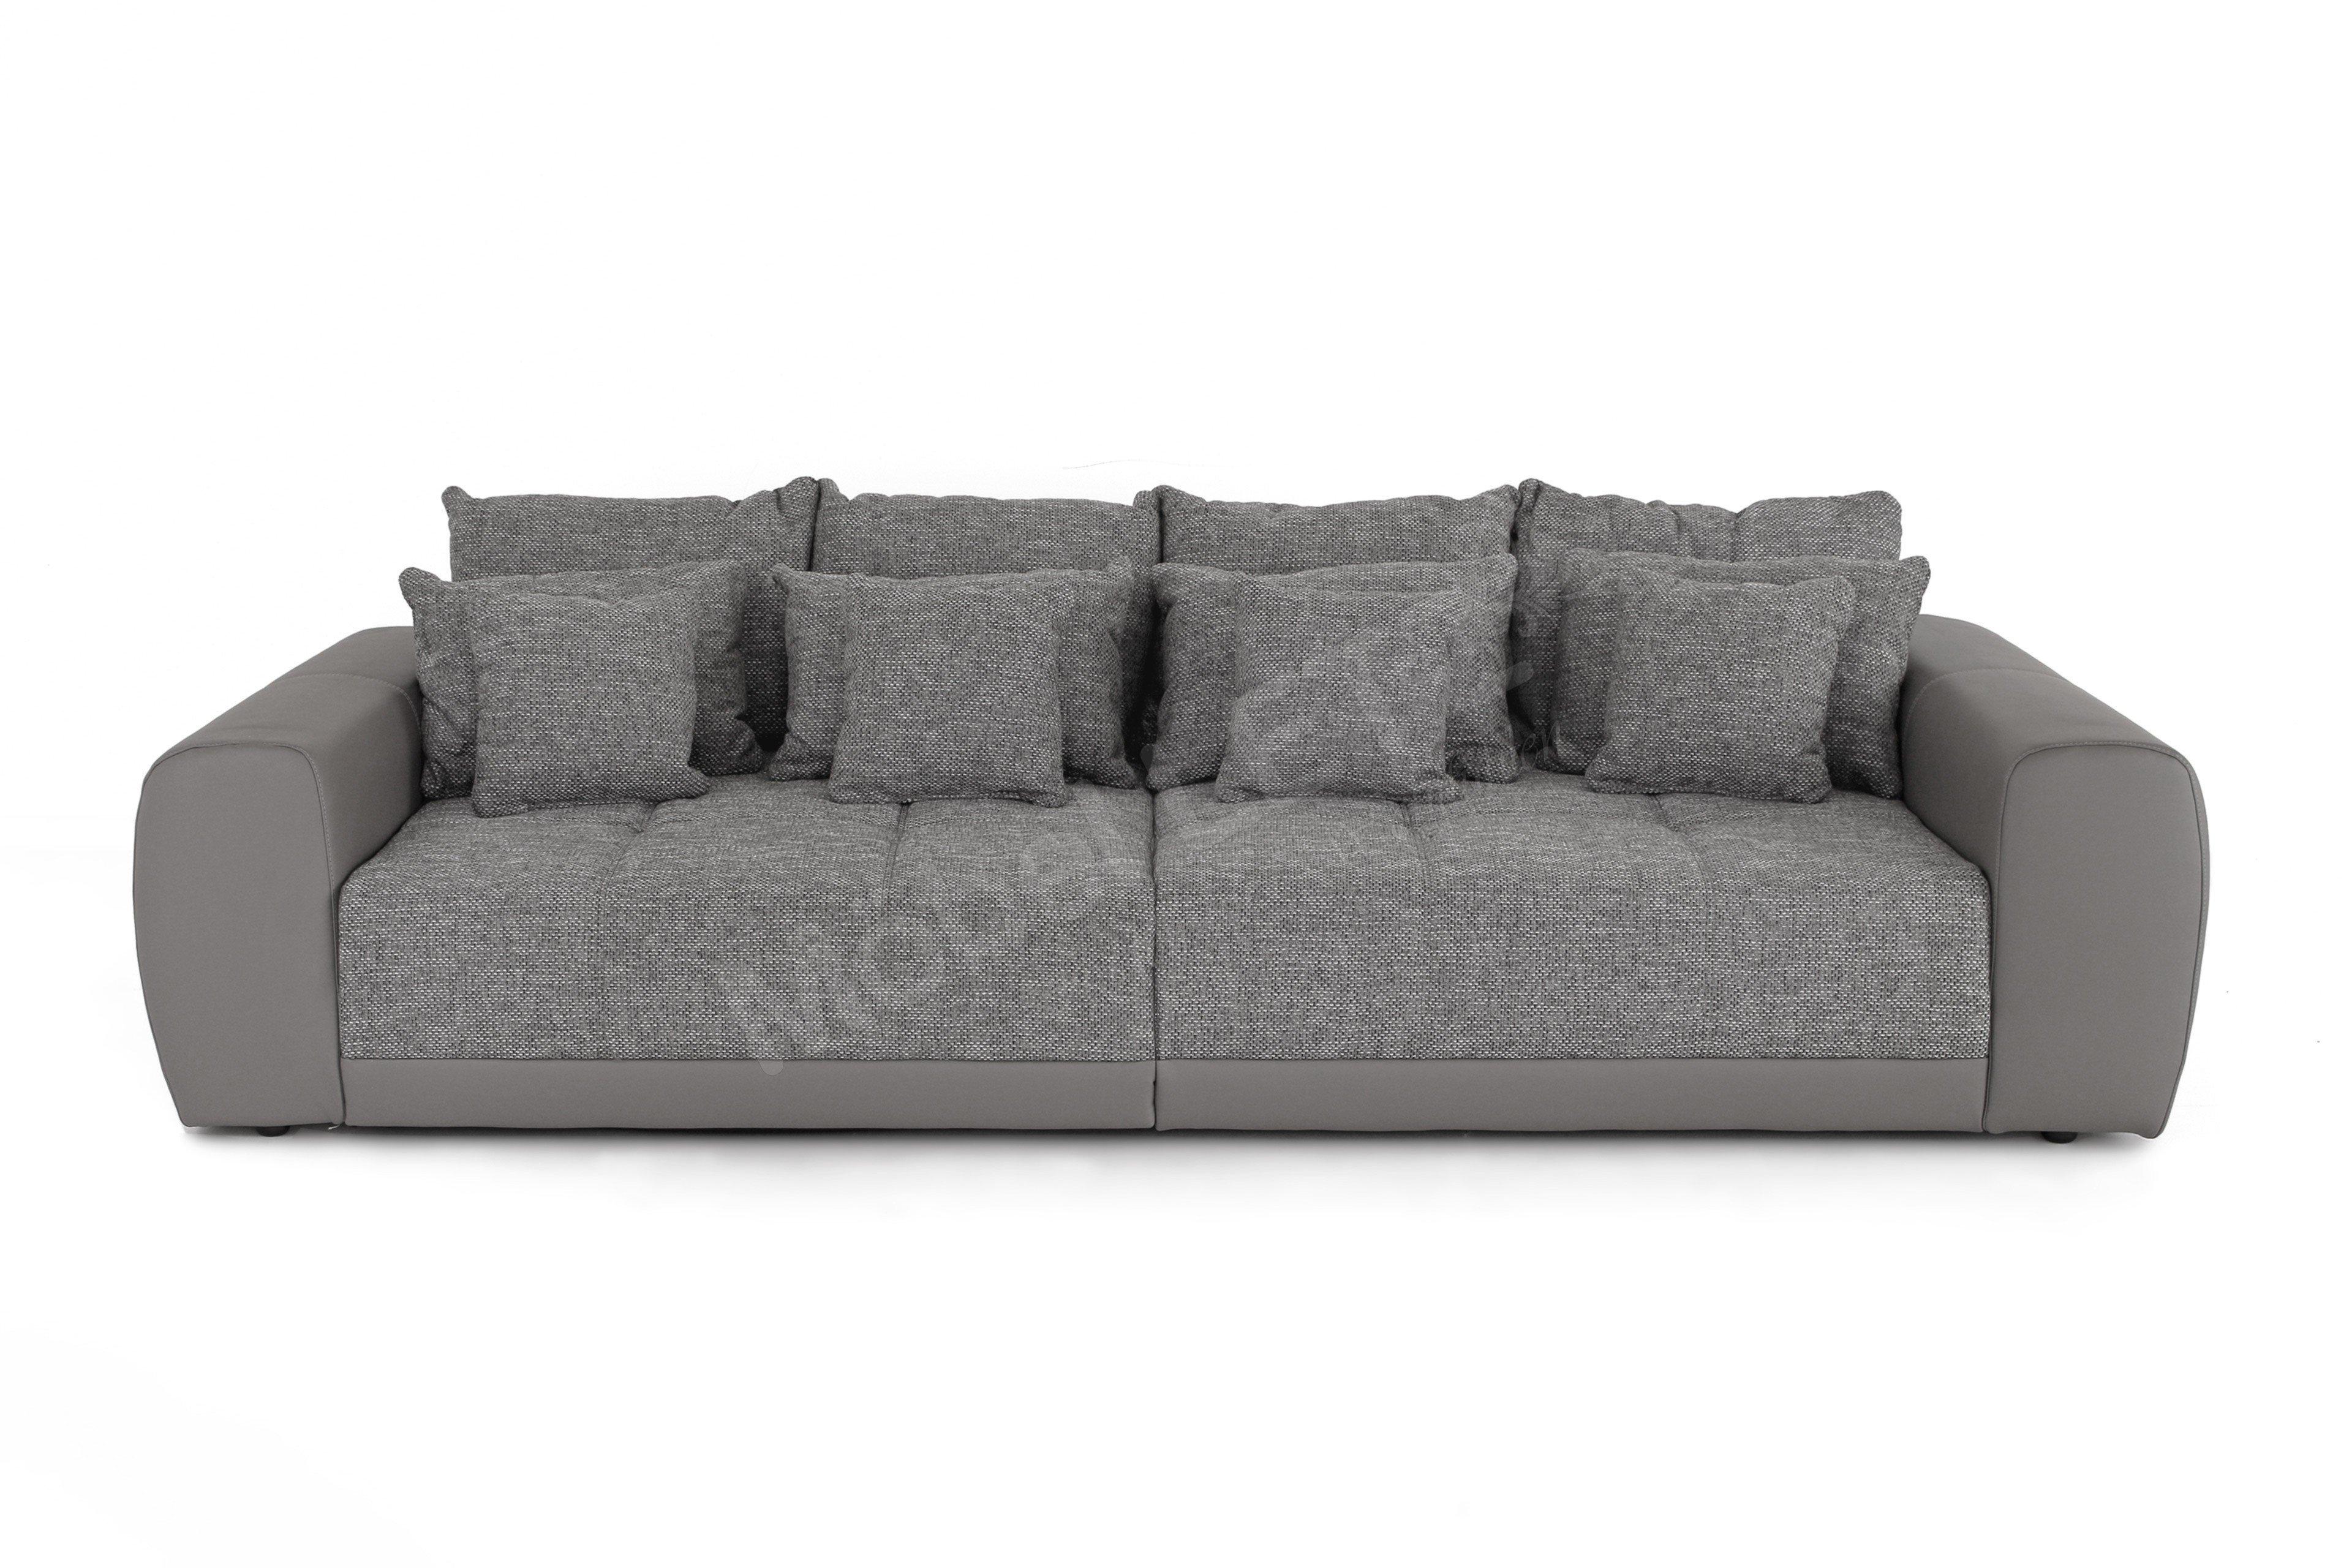 jockenh fer sofa samy in grau m bel letz ihr online shop. Black Bedroom Furniture Sets. Home Design Ideas